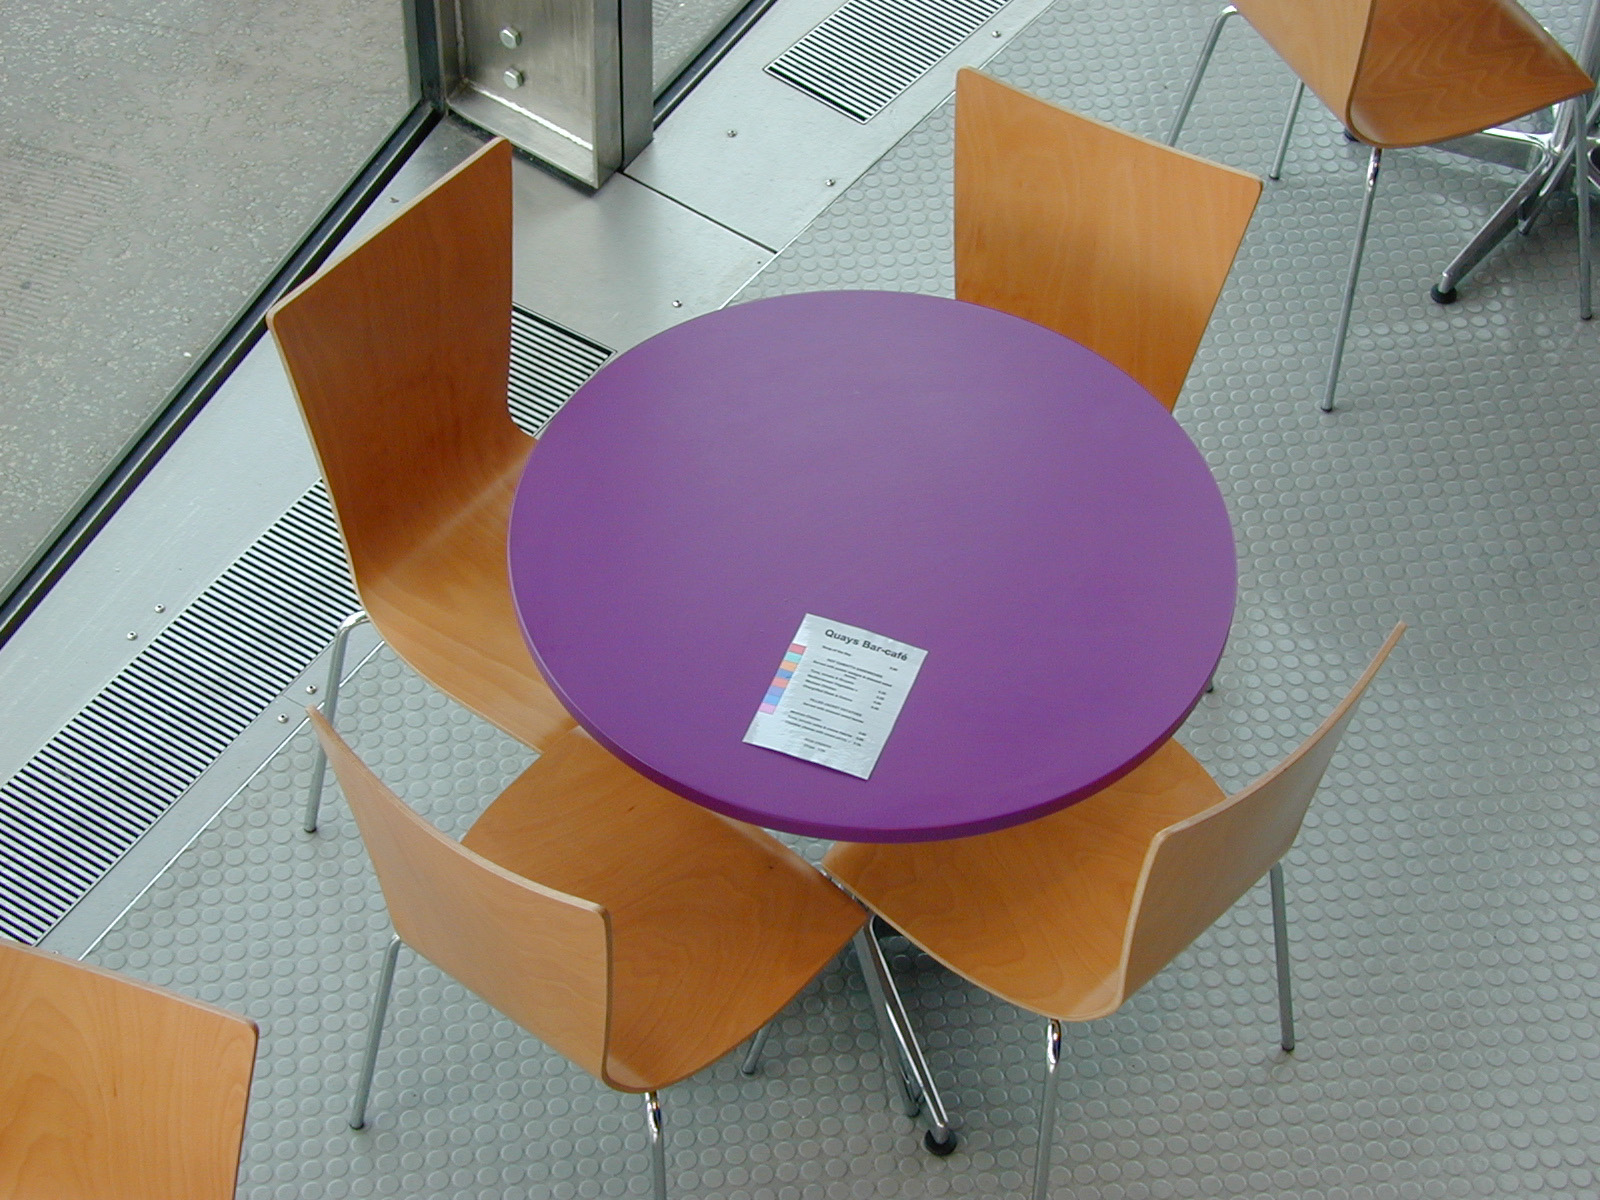 Modern cafe chairs and tables - Cut Paste Code